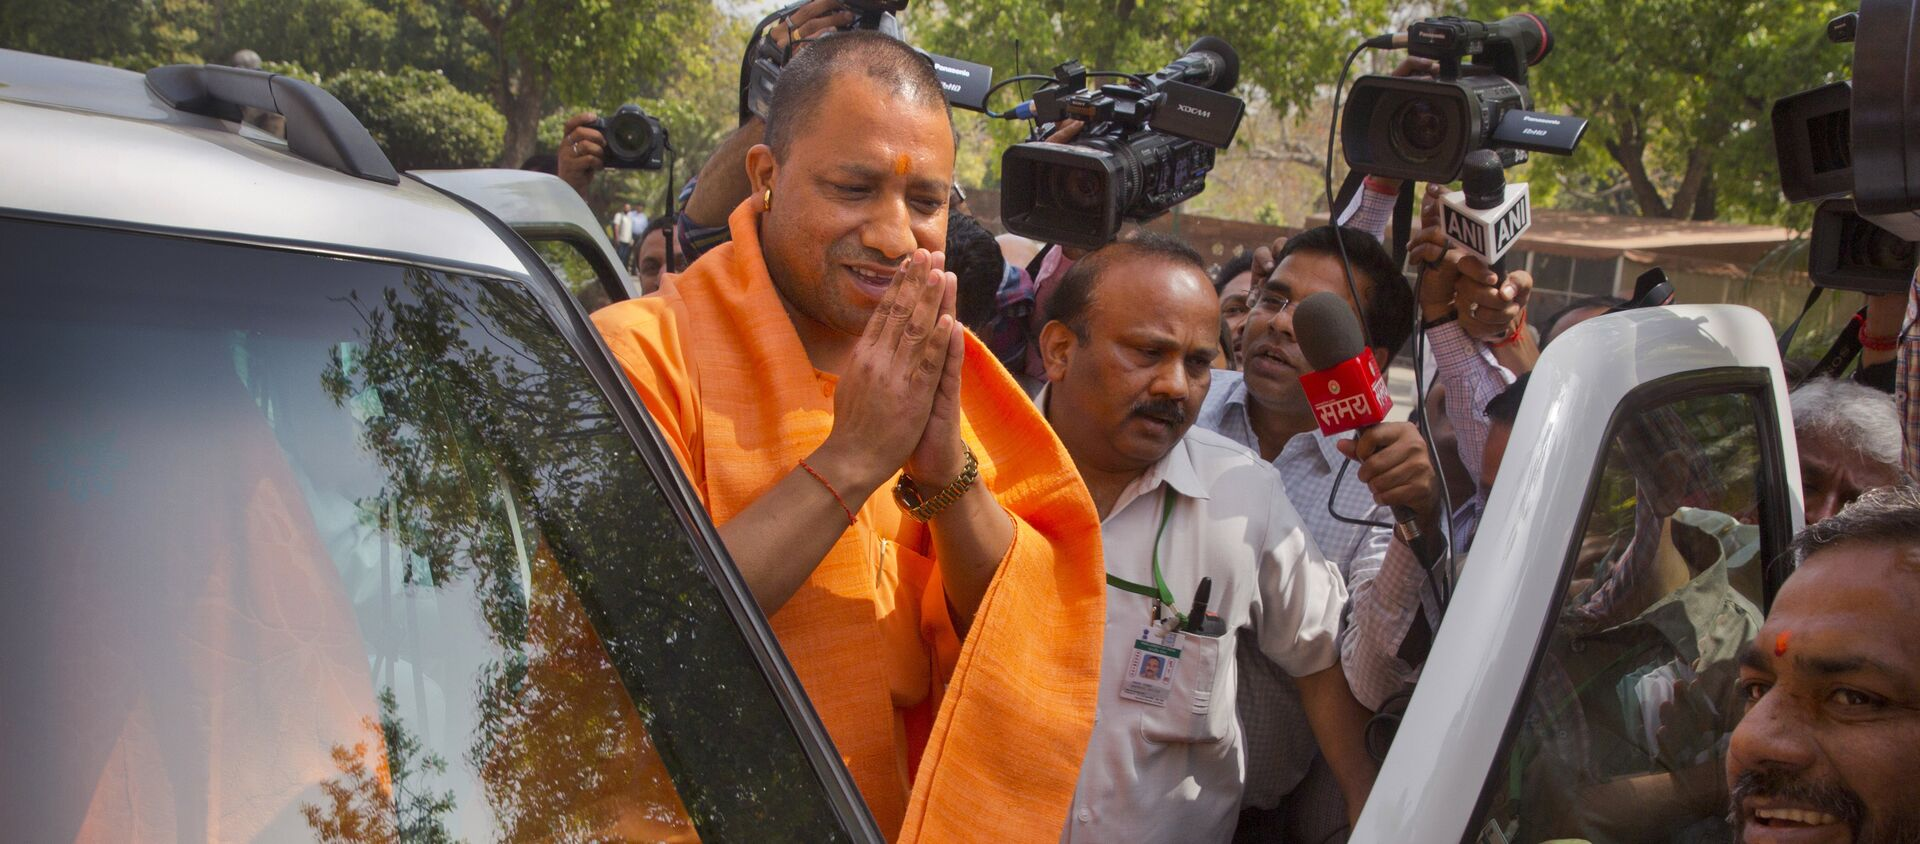 The new Chief Minister of the northern Indian state of Uttar Pradesh Yogi Adityanath greets media as he arrives at the Parliament in New Delhi, India, Tuesday, March 21, 2017 - Sputnik International, 1920, 11.08.2021